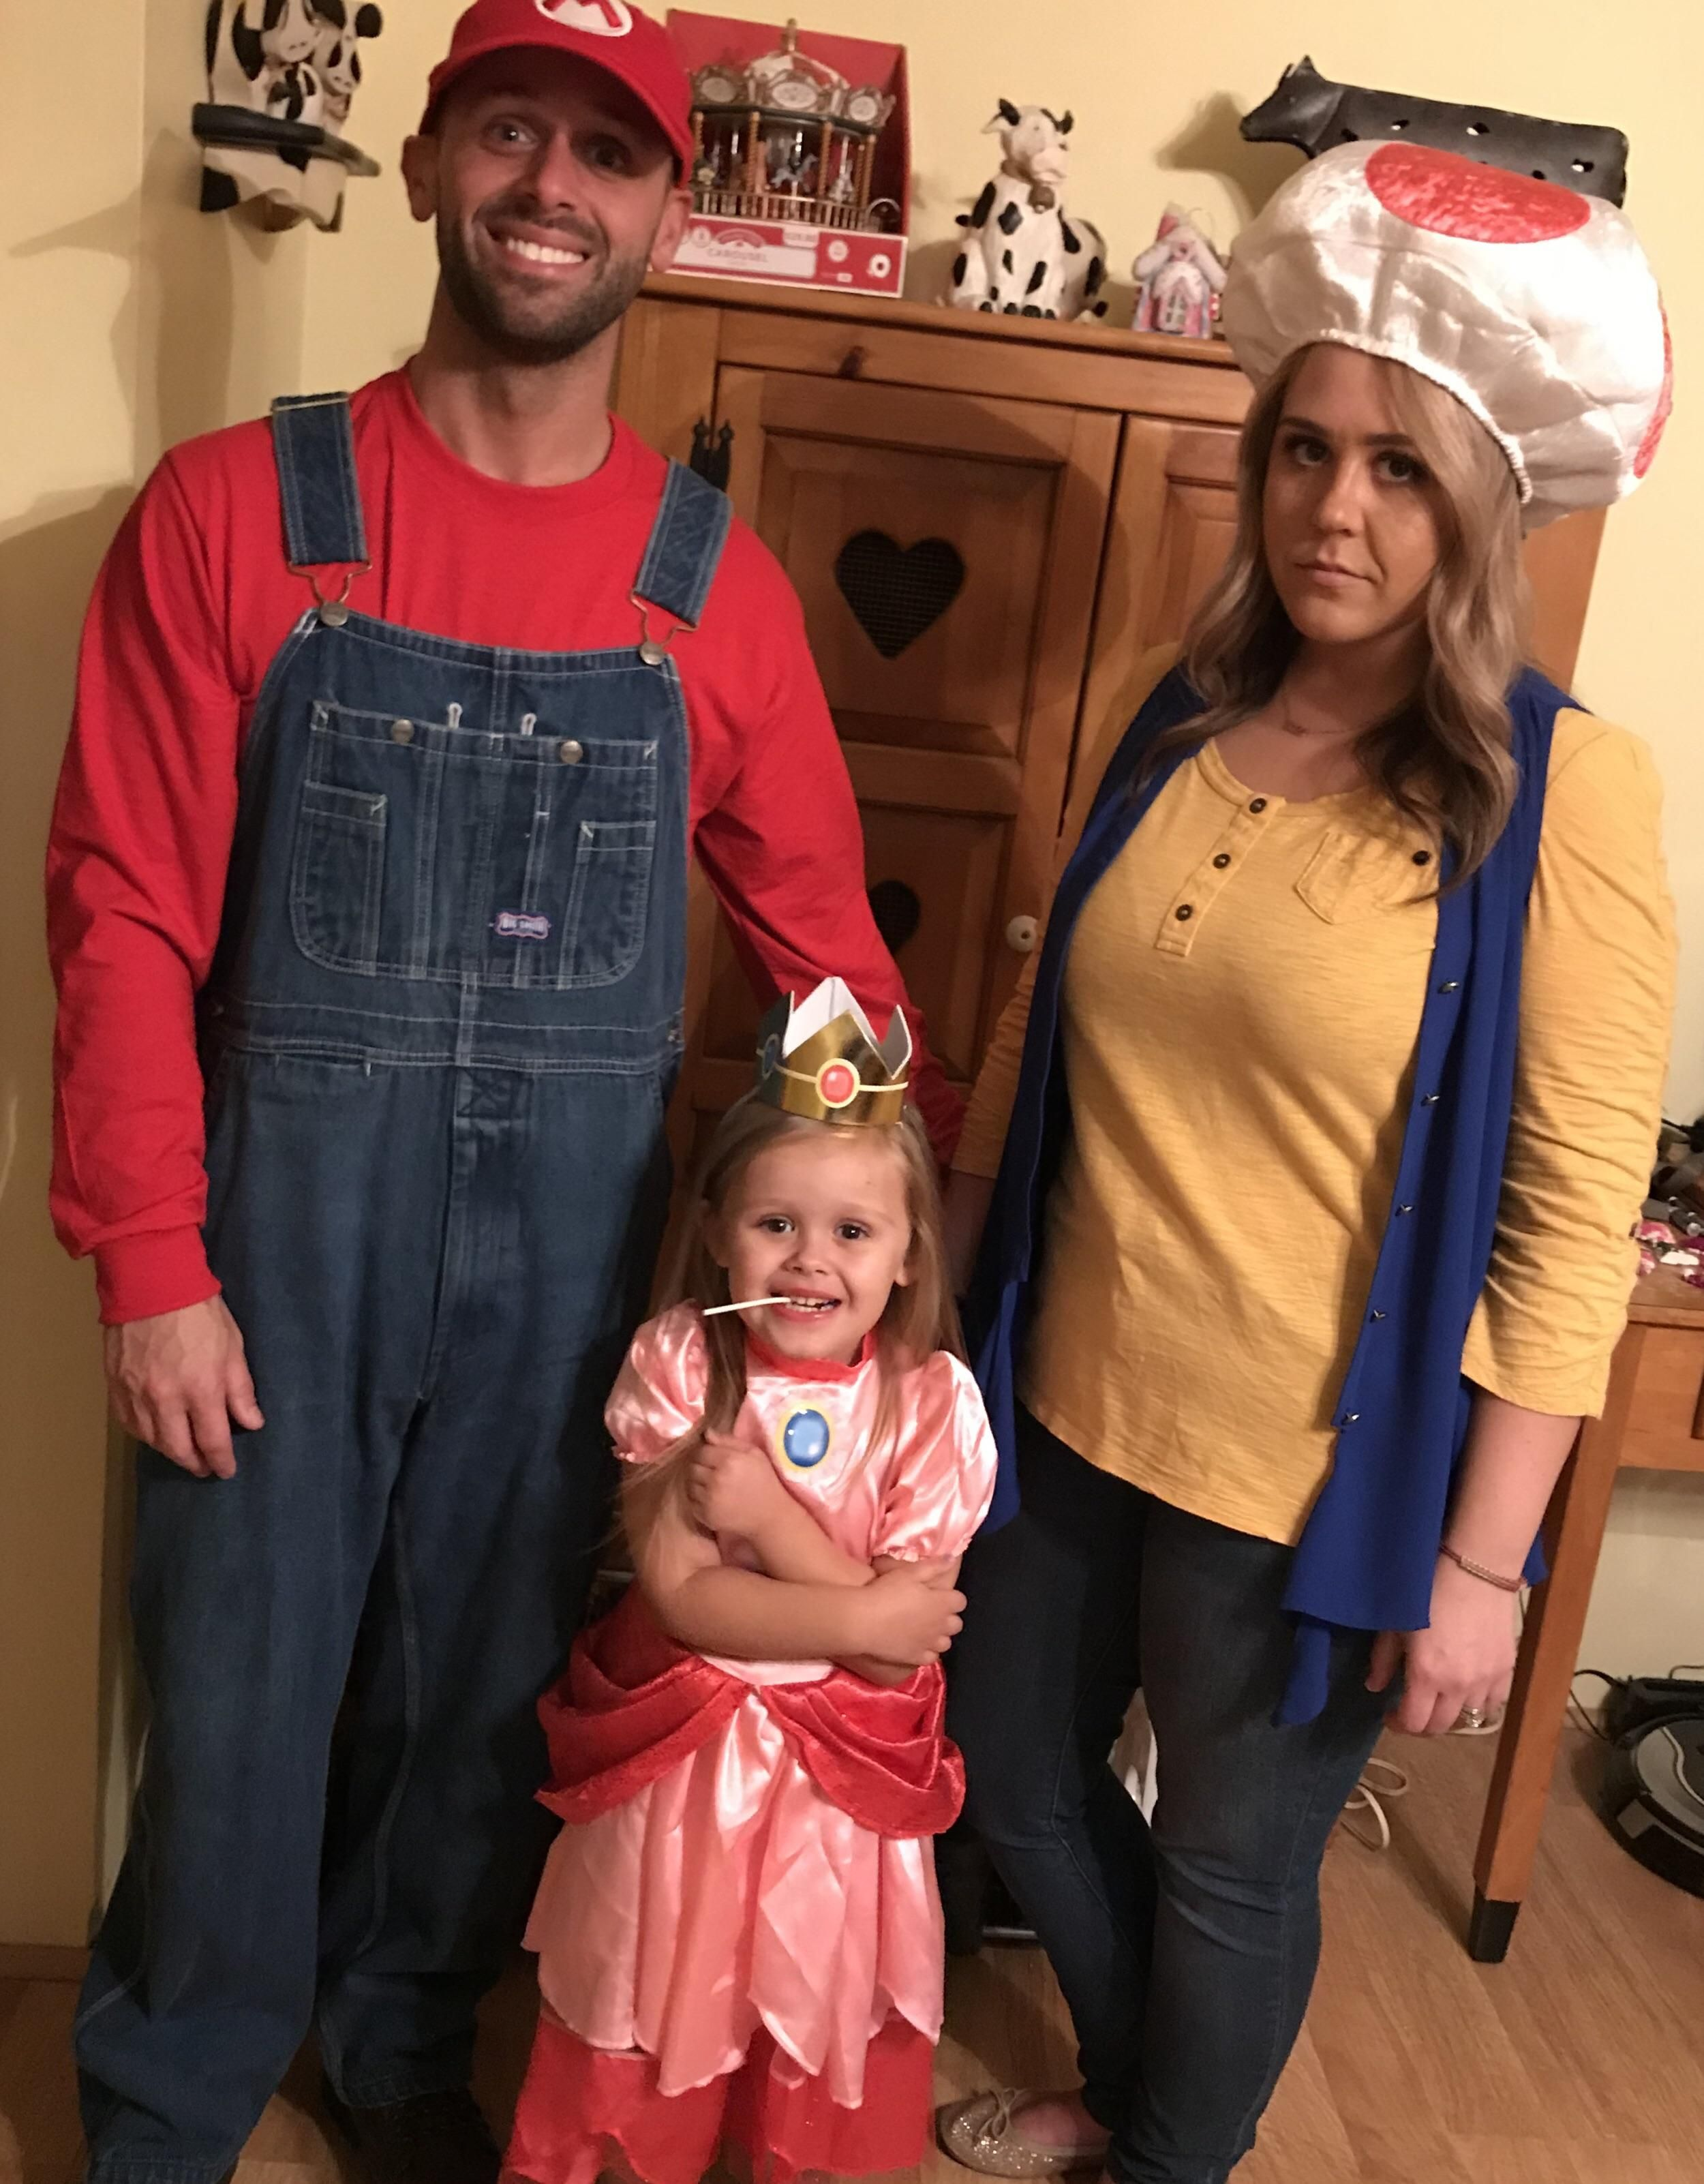 We let our daughter choose our costumes - my wife was not too happy with hers.